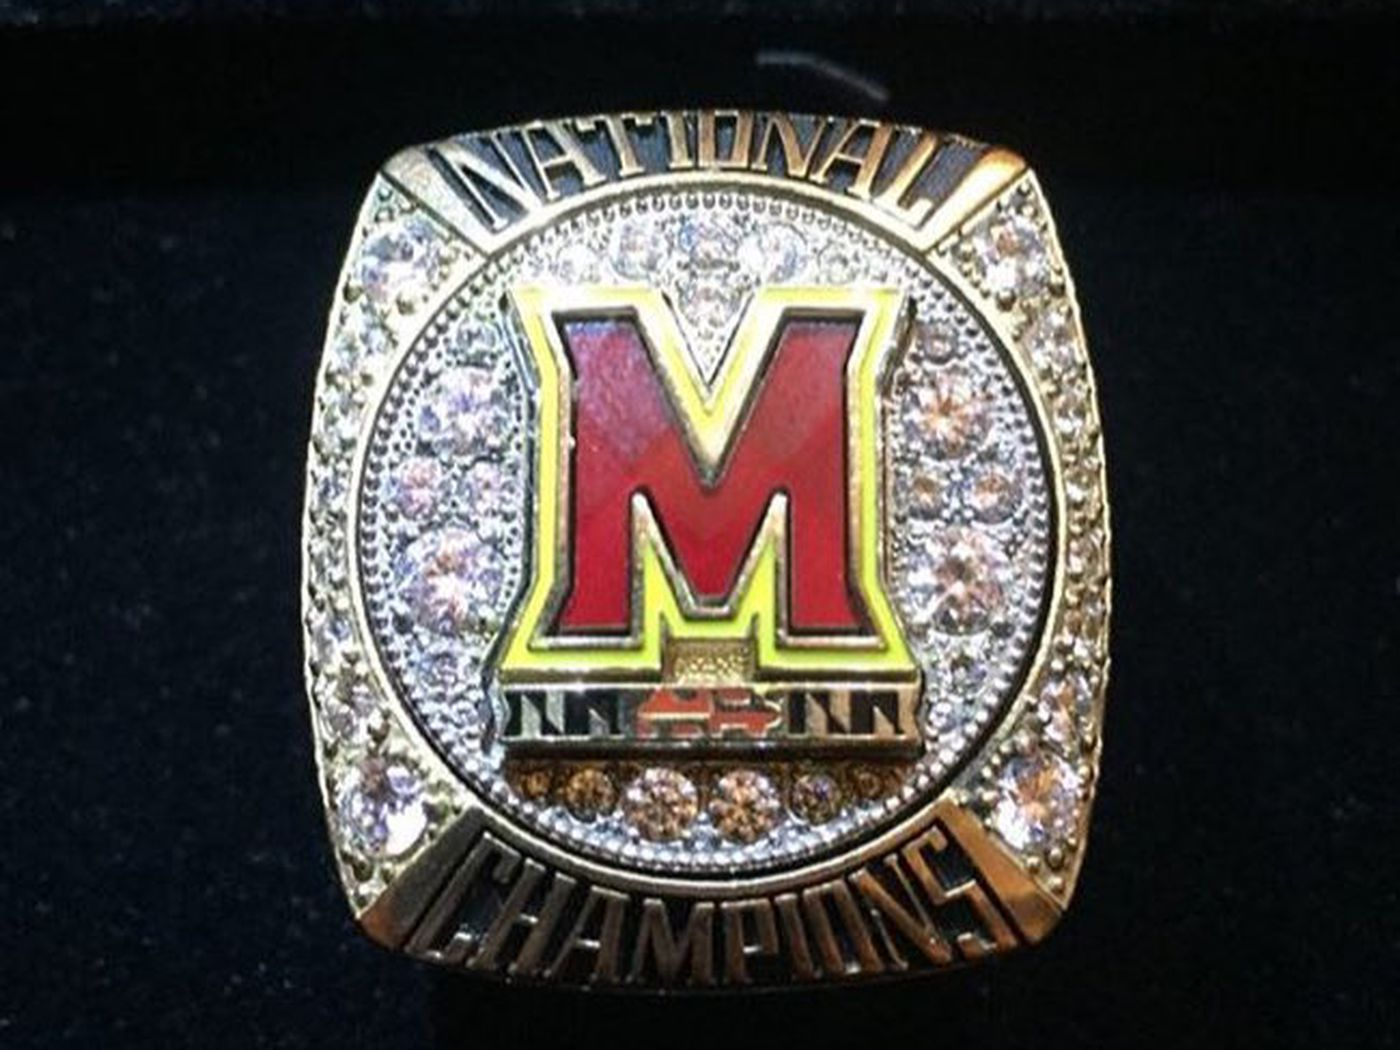 football nrprings college ncaa collection rings large championship